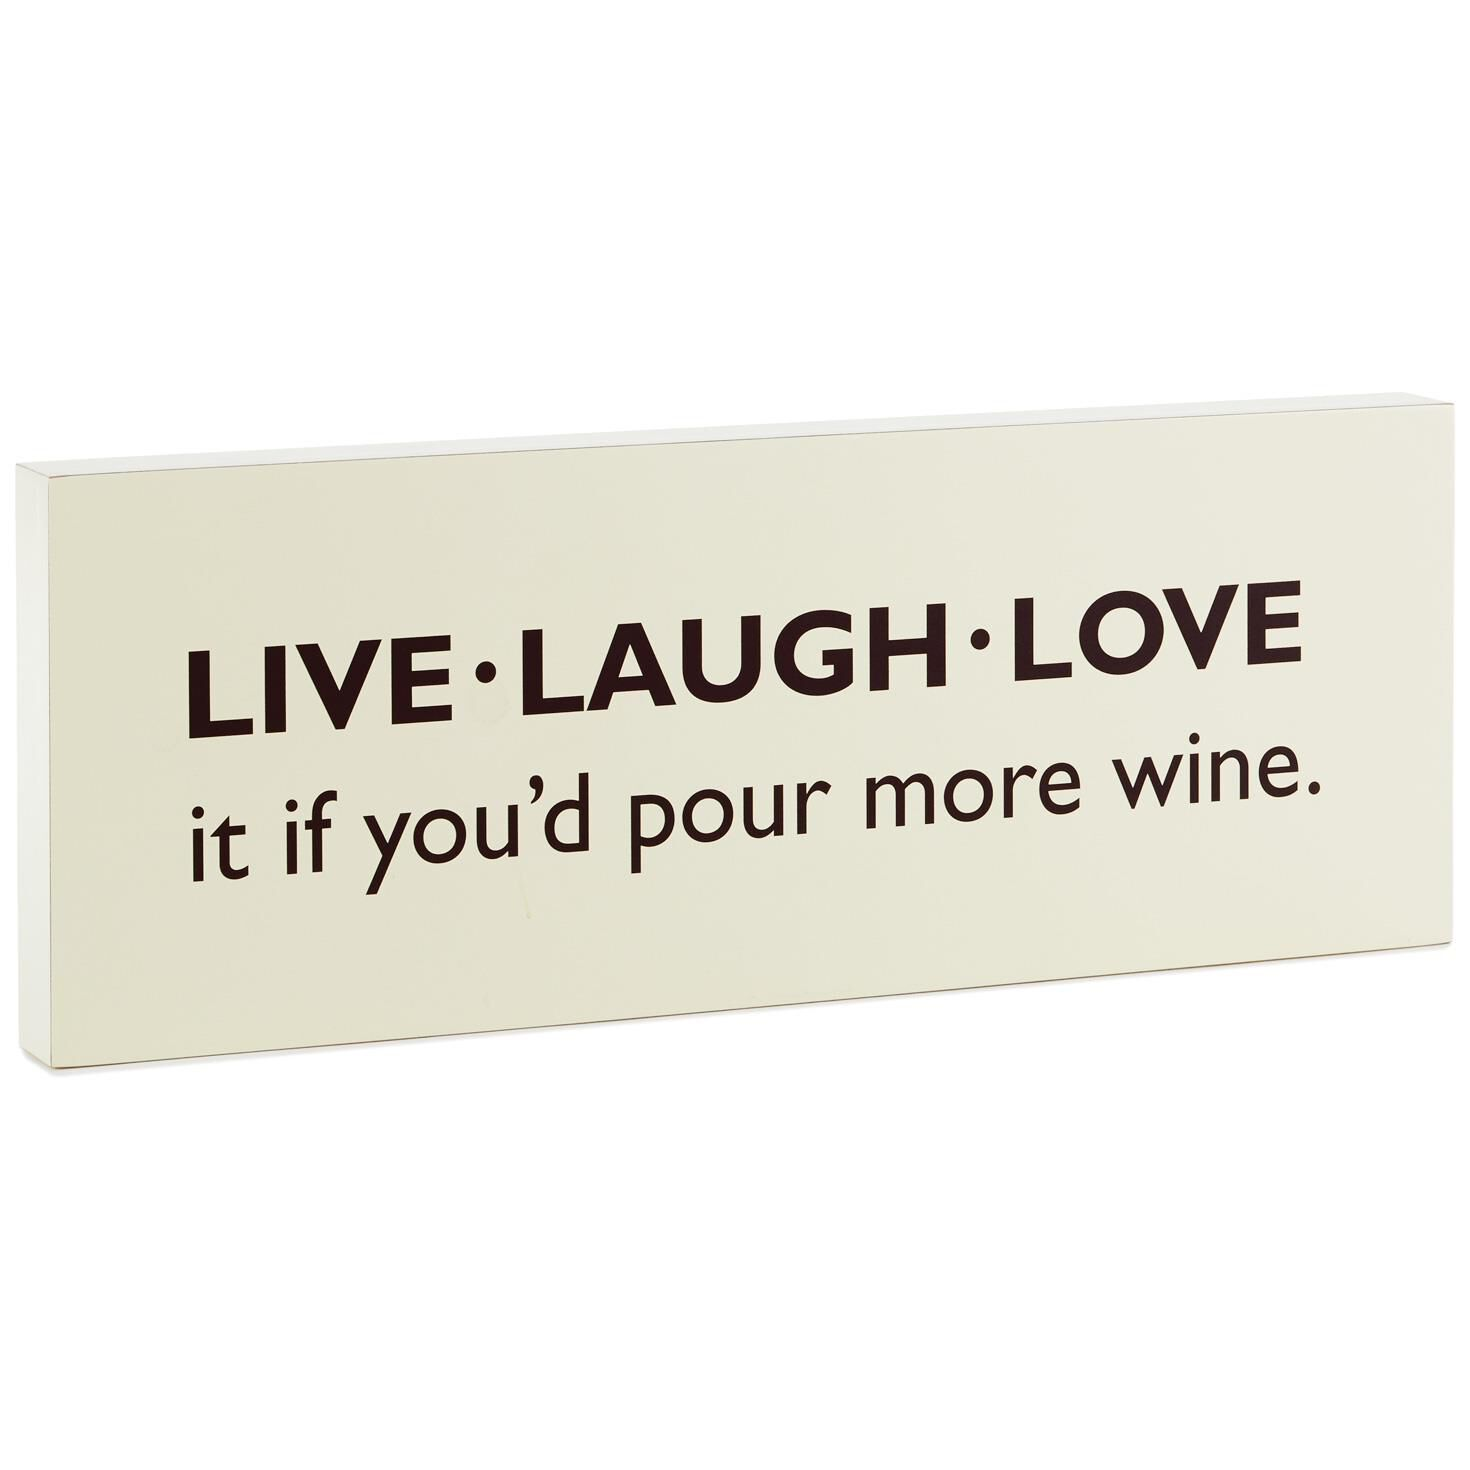 Live Laugh Love Wine Wood Quote Sign, 15.7x5.8